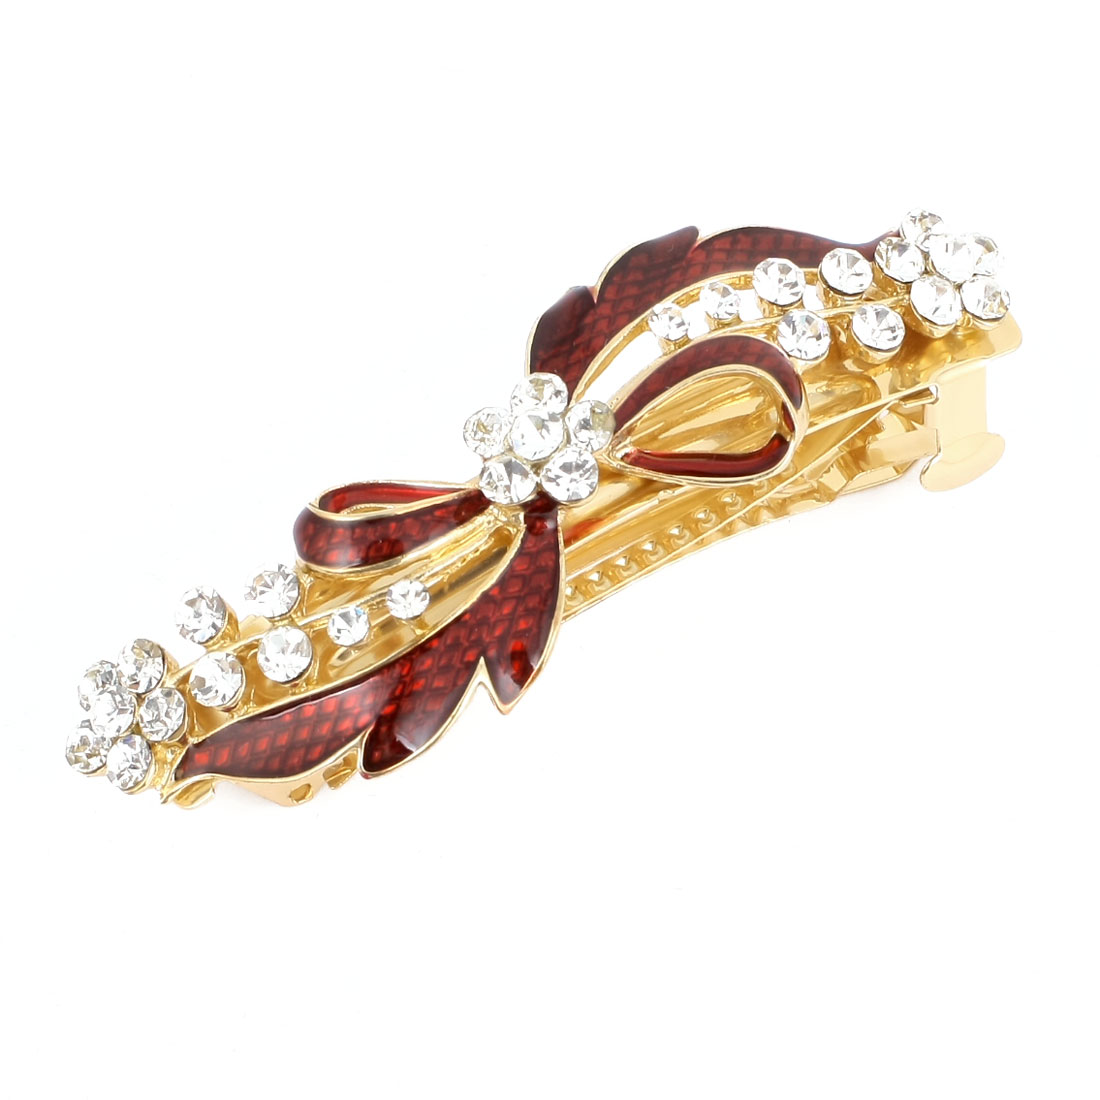 Ladies Rhinestone Accent Floral Design Hair Clip Barrette Burgundy Gold Tone